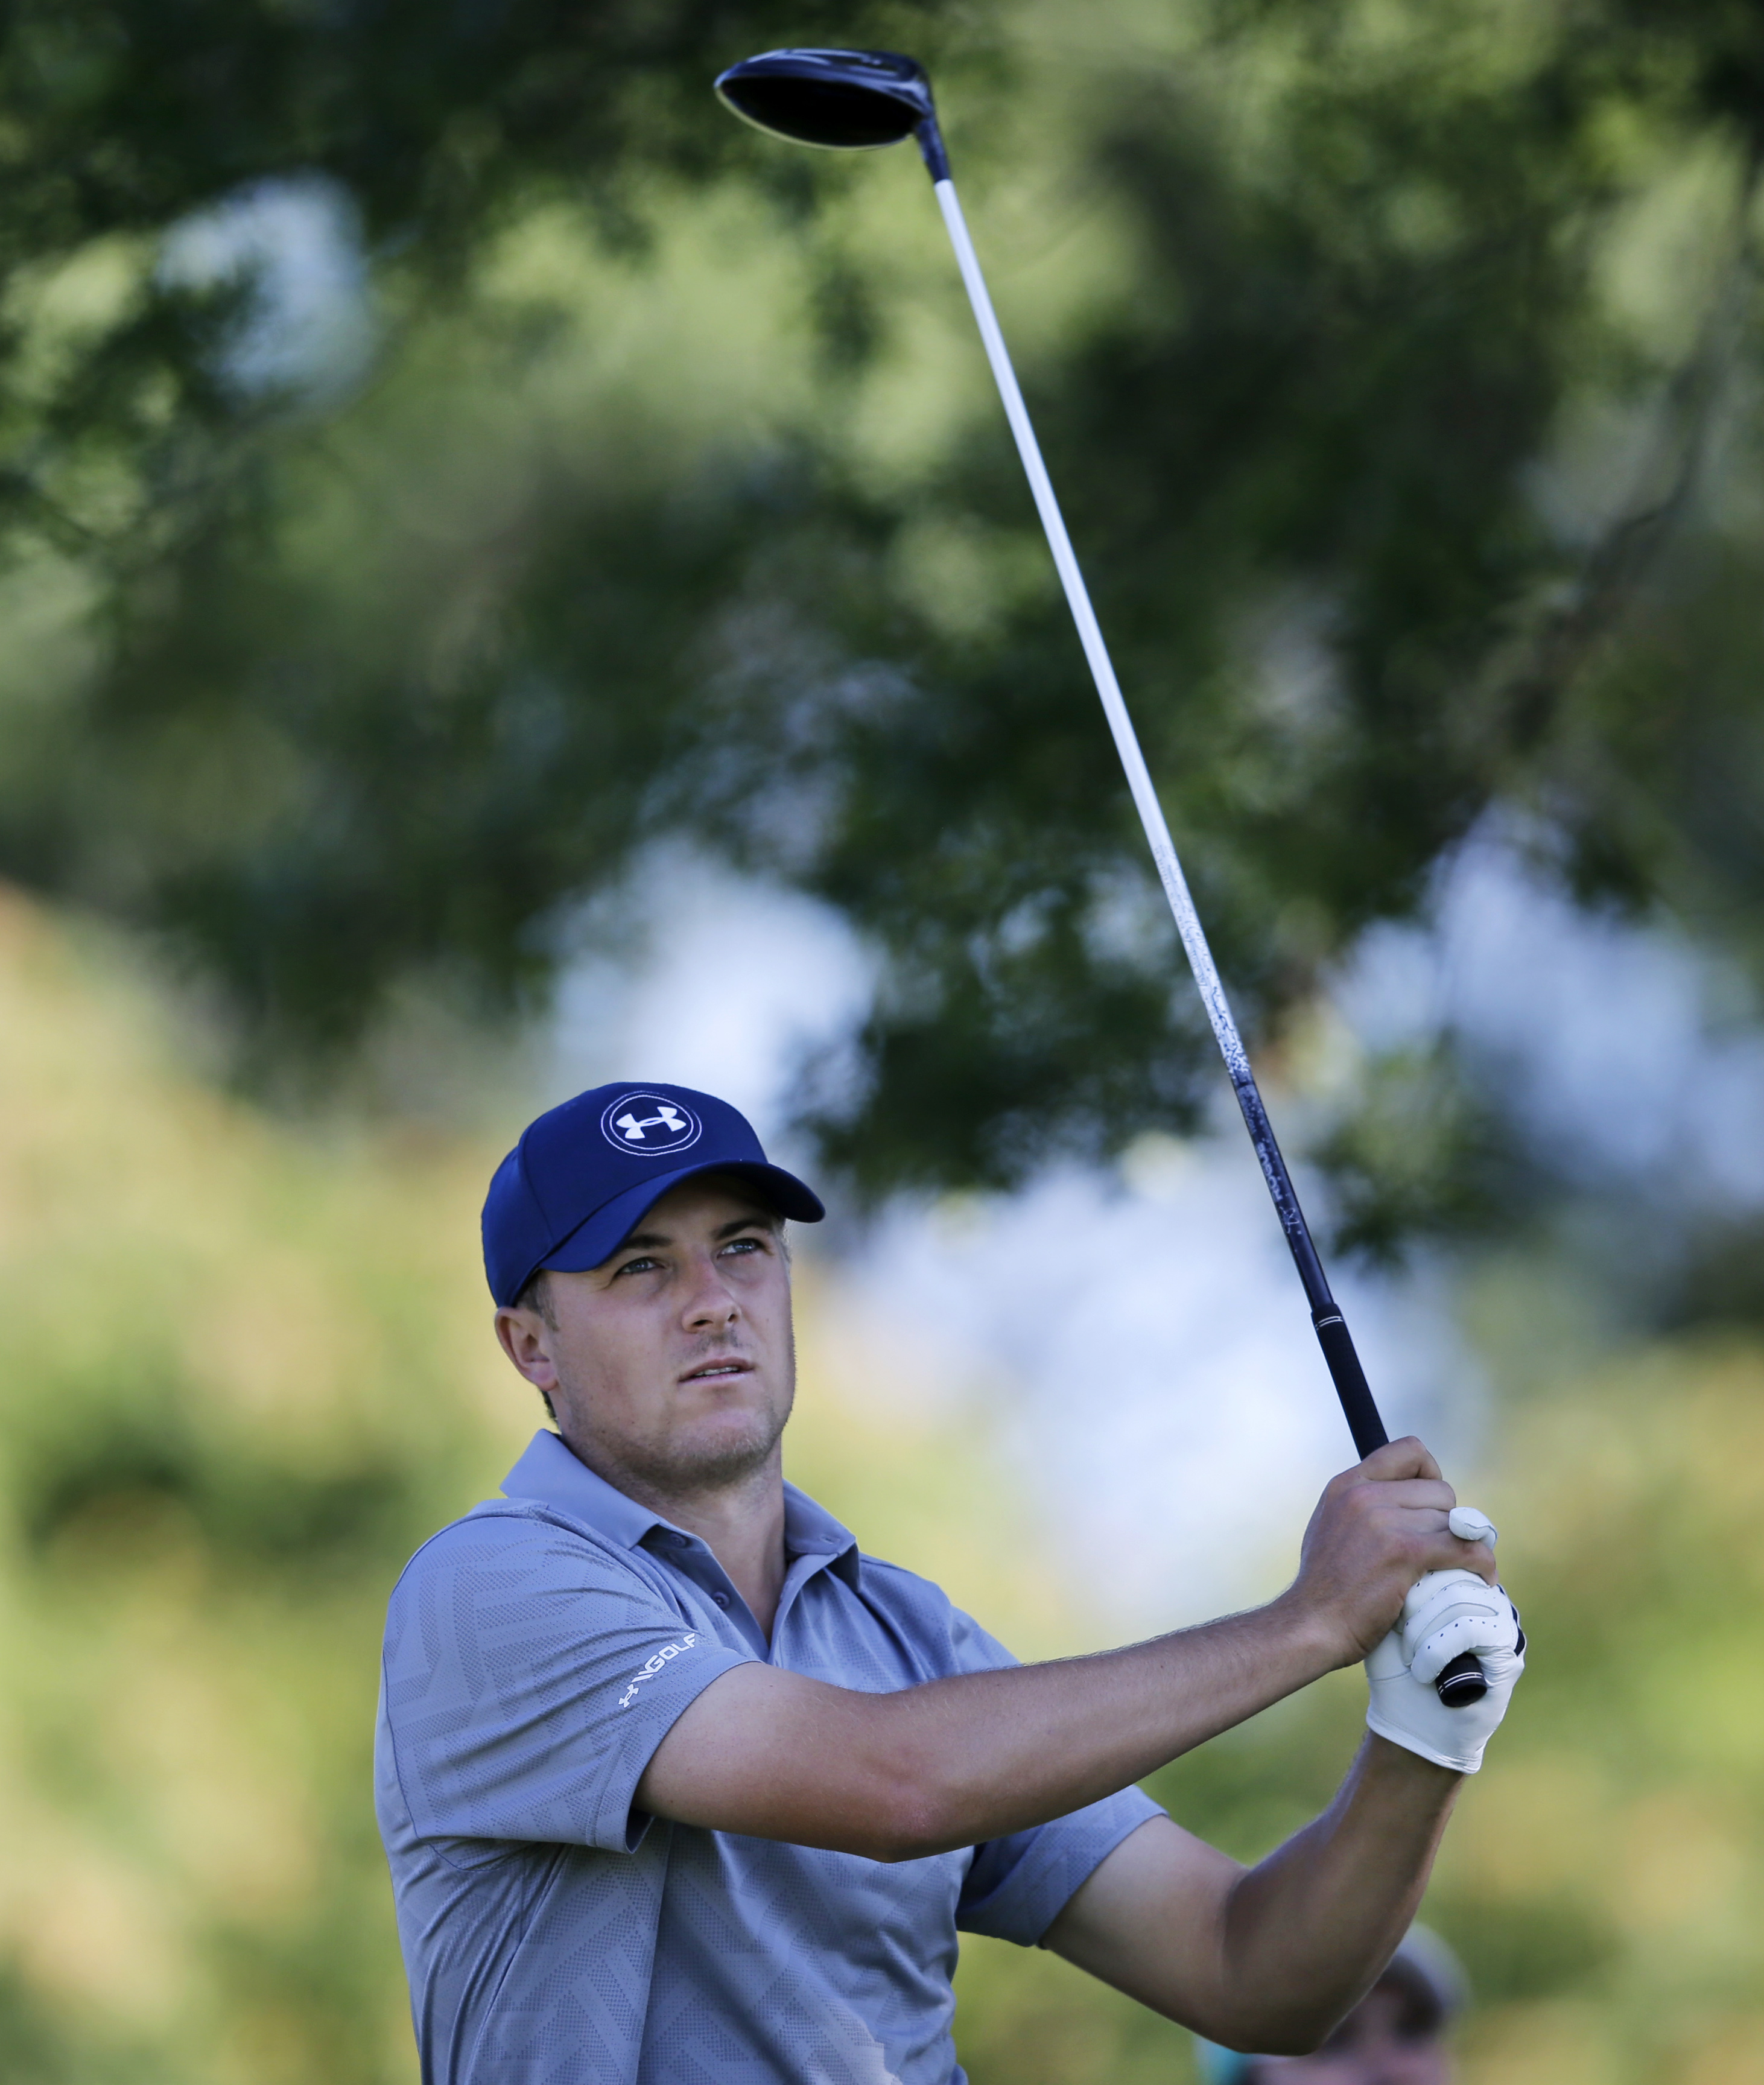 Jordan Spieth hits a tee shot on the 12th hole during the first round of play at The Barclays golf tournament Thursday, Aug. 27, 2015, in Edison, N.J. (AP Photo/Mel Evans)